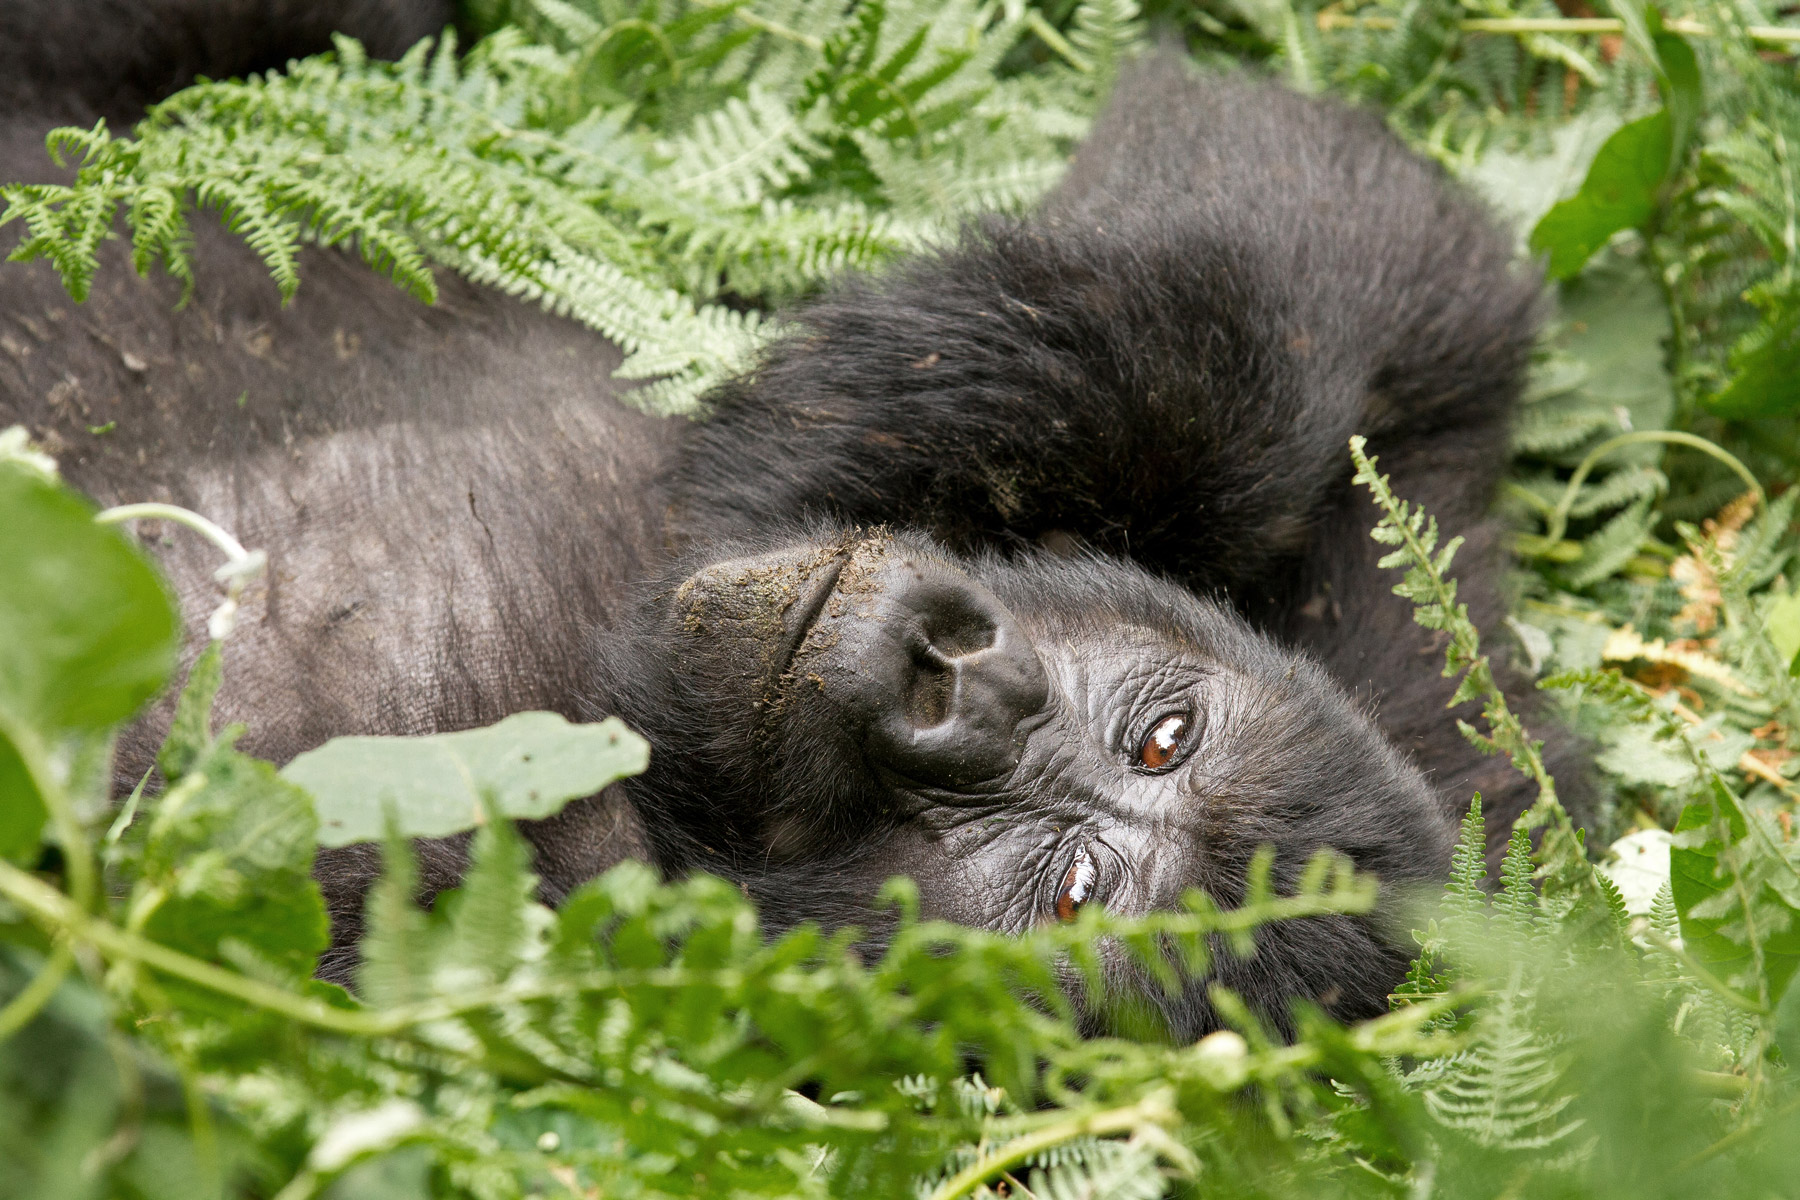 A young gorilla laying on the ground